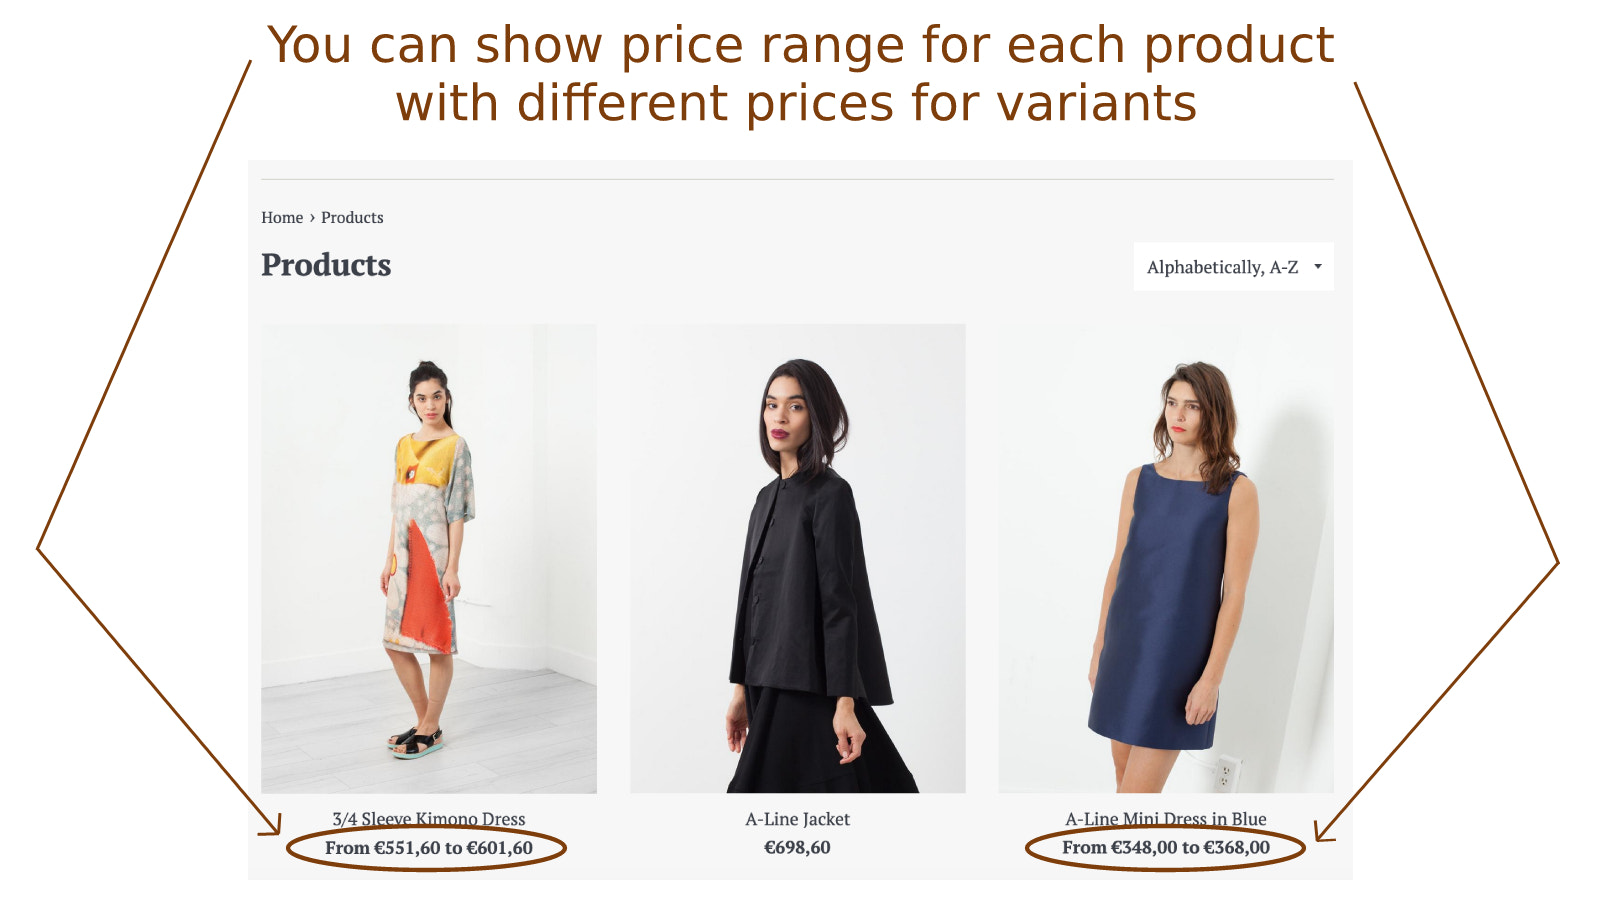 Show price range for each product with different prices